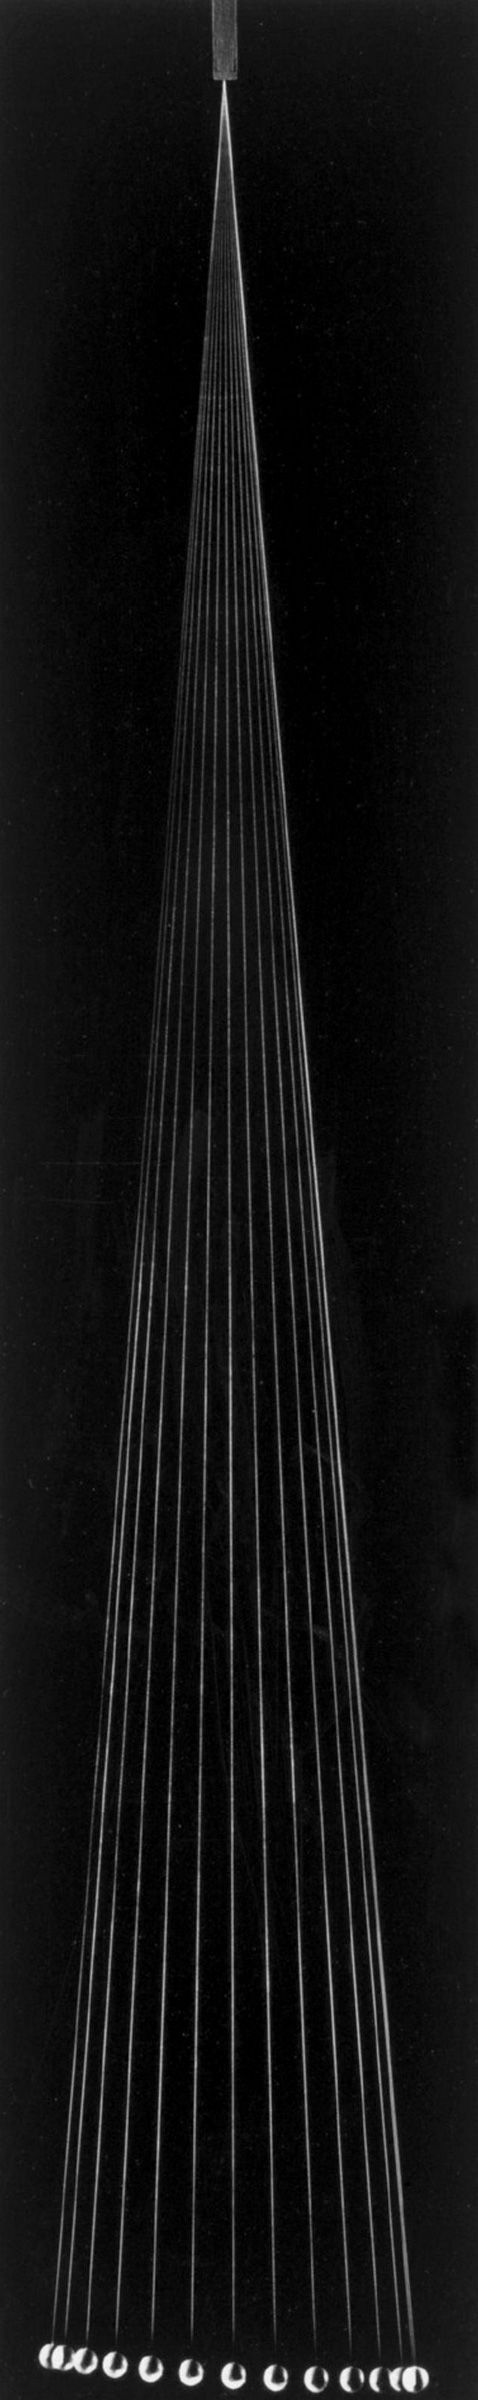 Berenice Abbott's Minimalist Black-and-White Science Imagery, 1958-1960.  The Pendulum (1960)